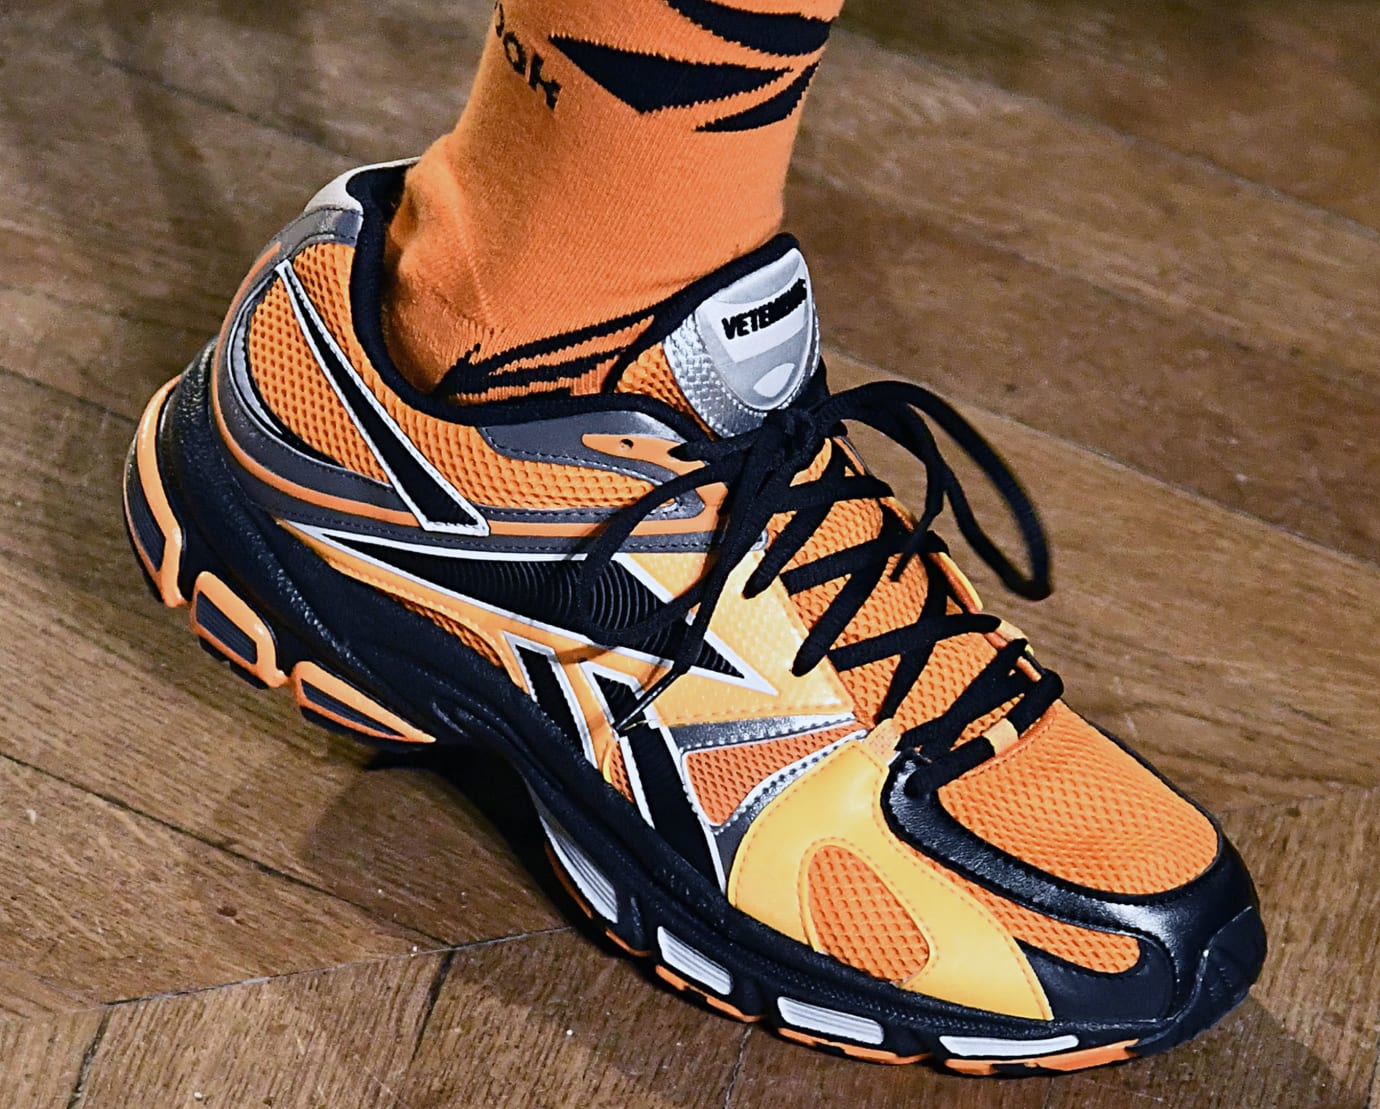 Vetements x Reebok FW 19 Runner (Orange)